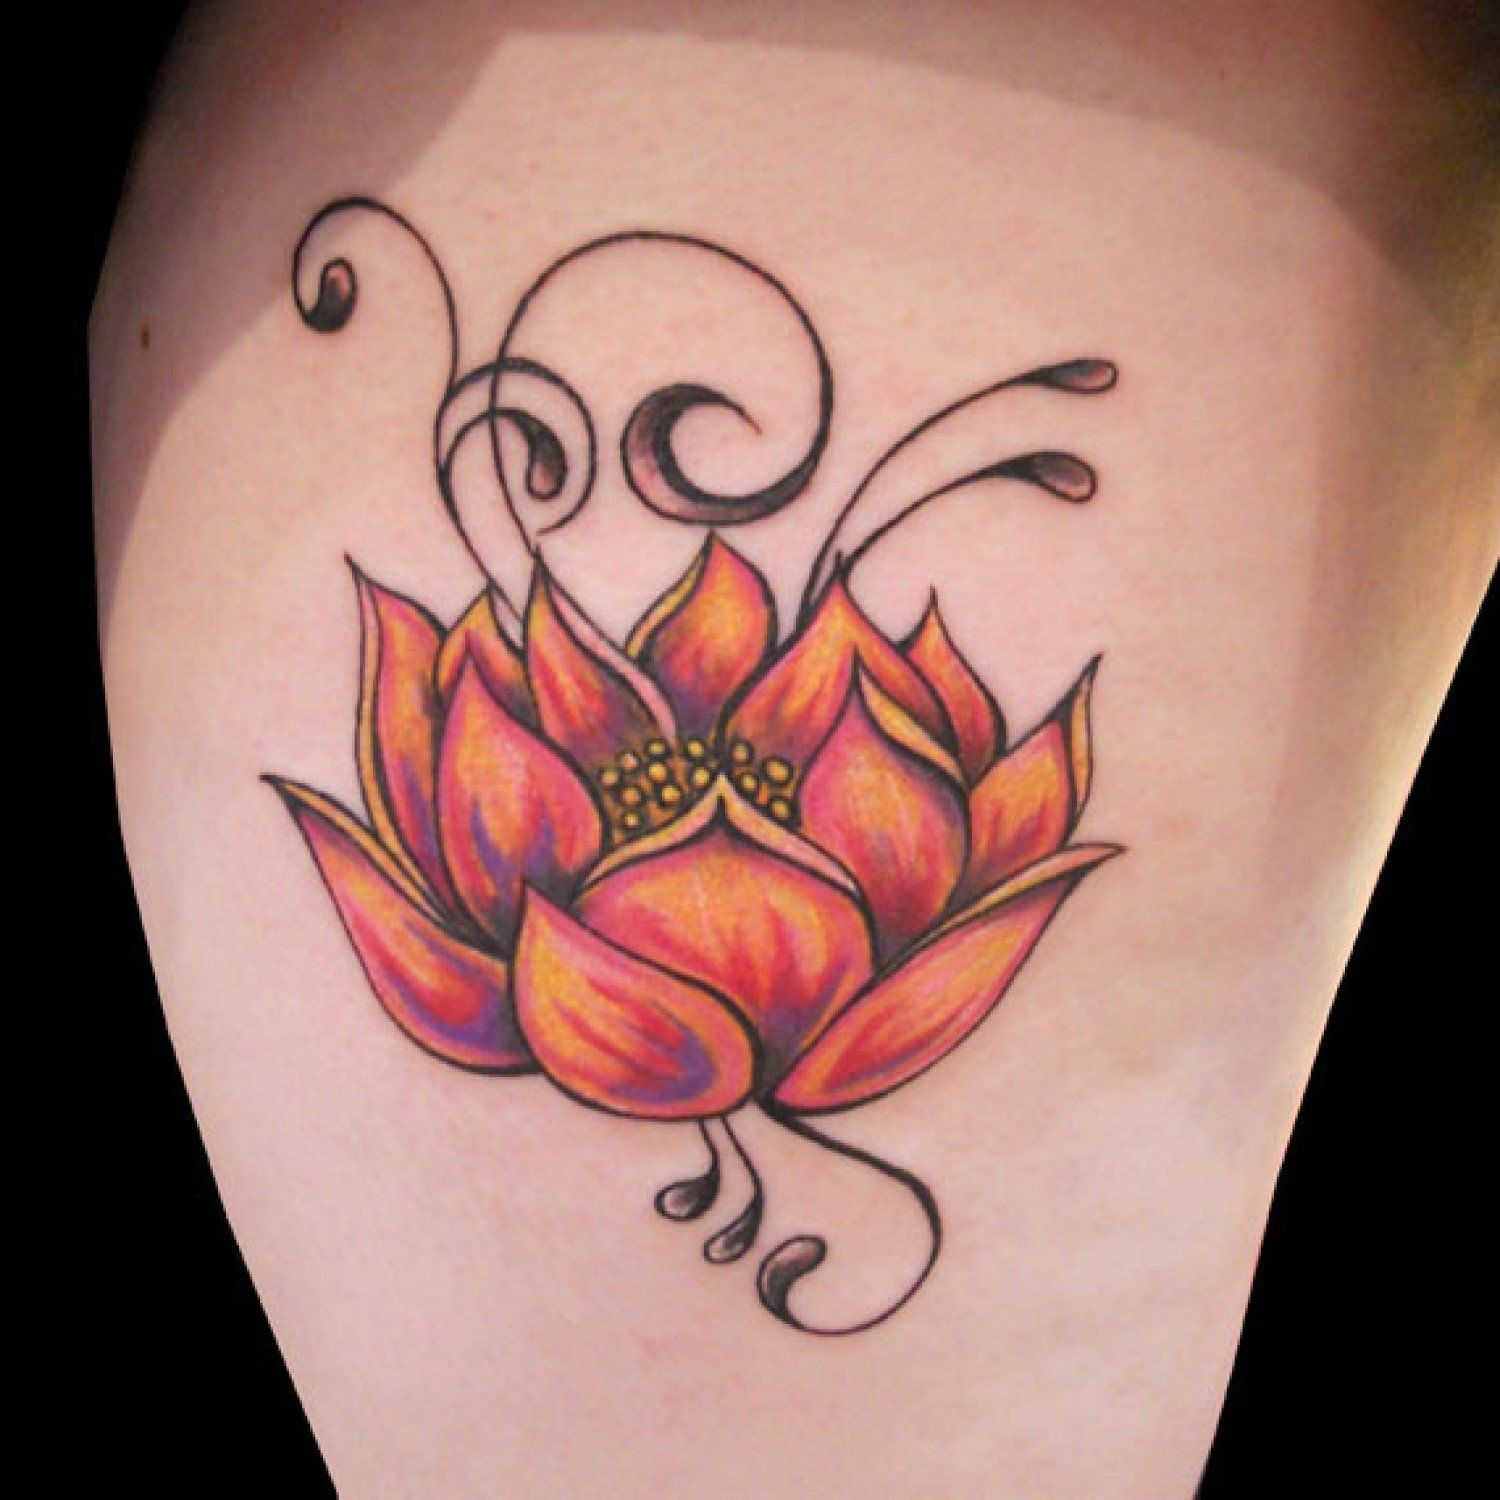 Lotus Flower Tattoo The most popular floral tattoo has